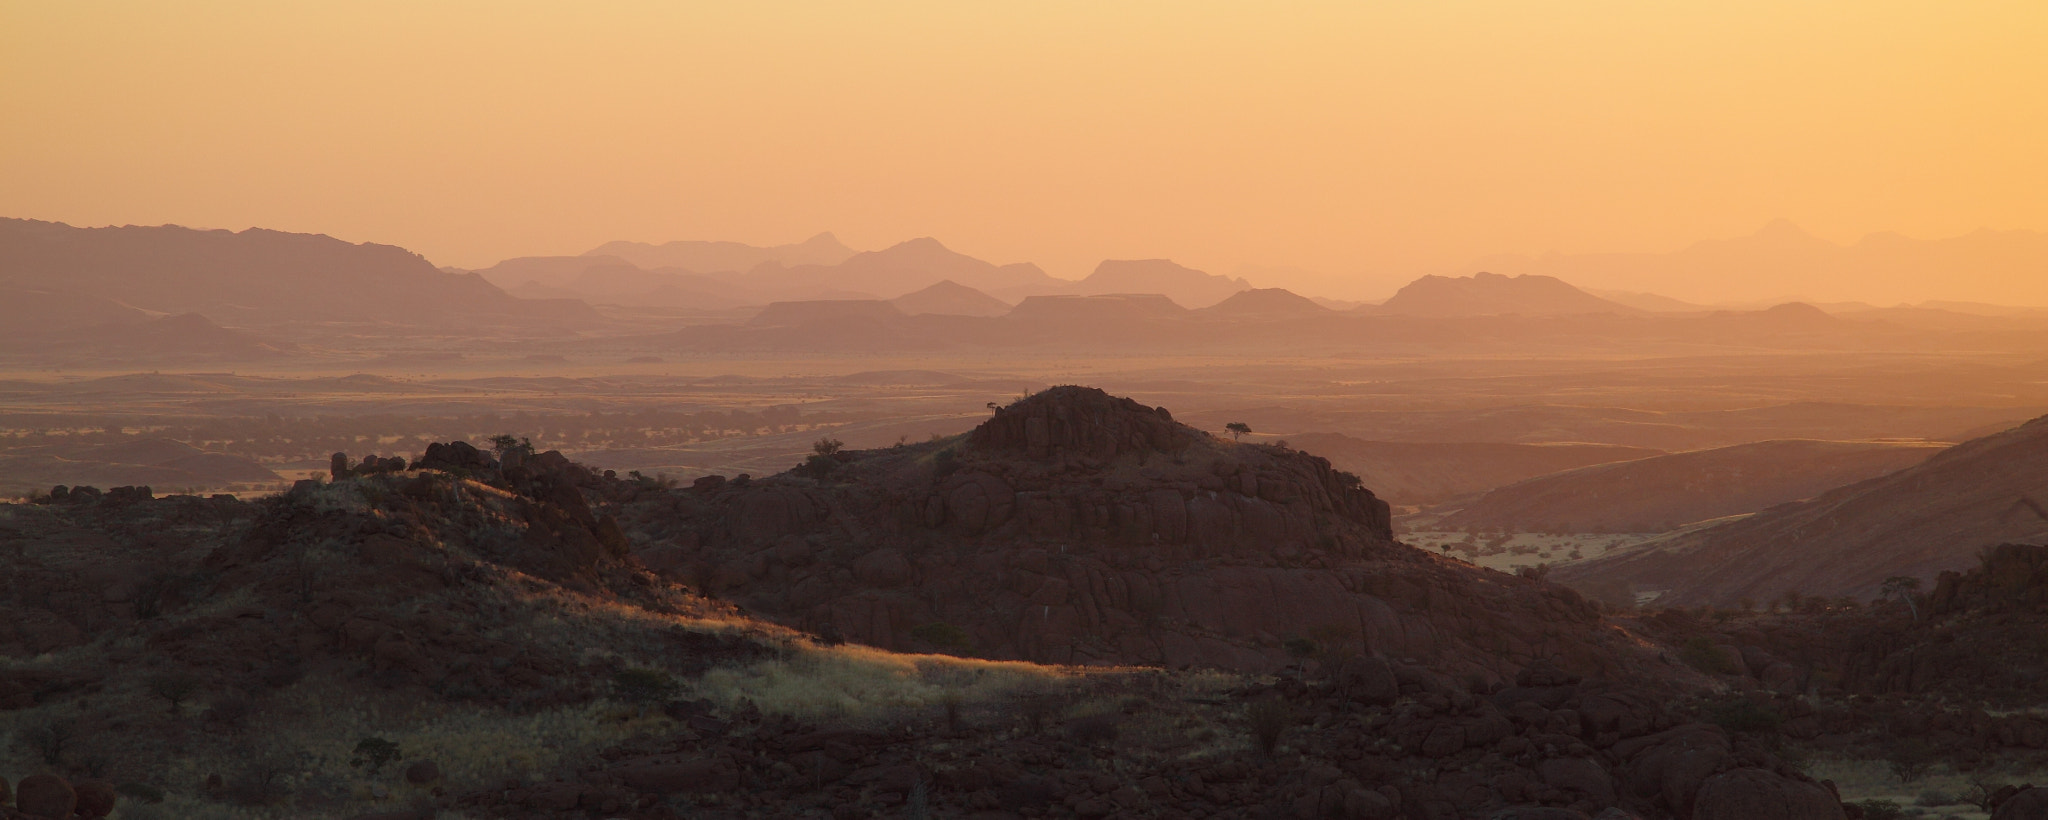 Photograph Damaraland sunset by Charles Lacy on 500px